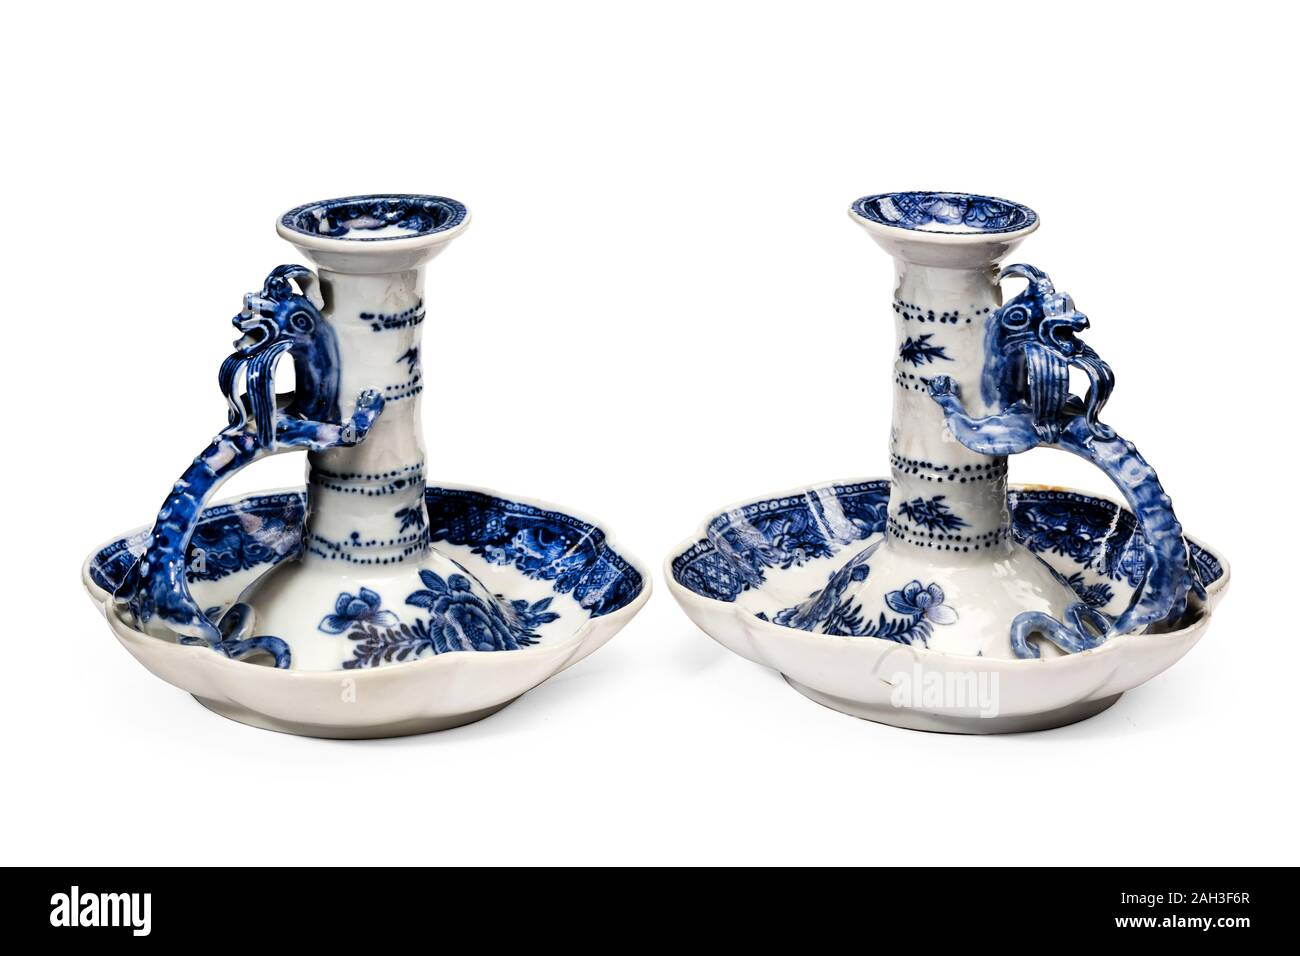 Antique Pair White Porcelain Bedtime Candlestick Holders Painted With Blue Patterns Vintage Candle Holder Stock Photo Alamy